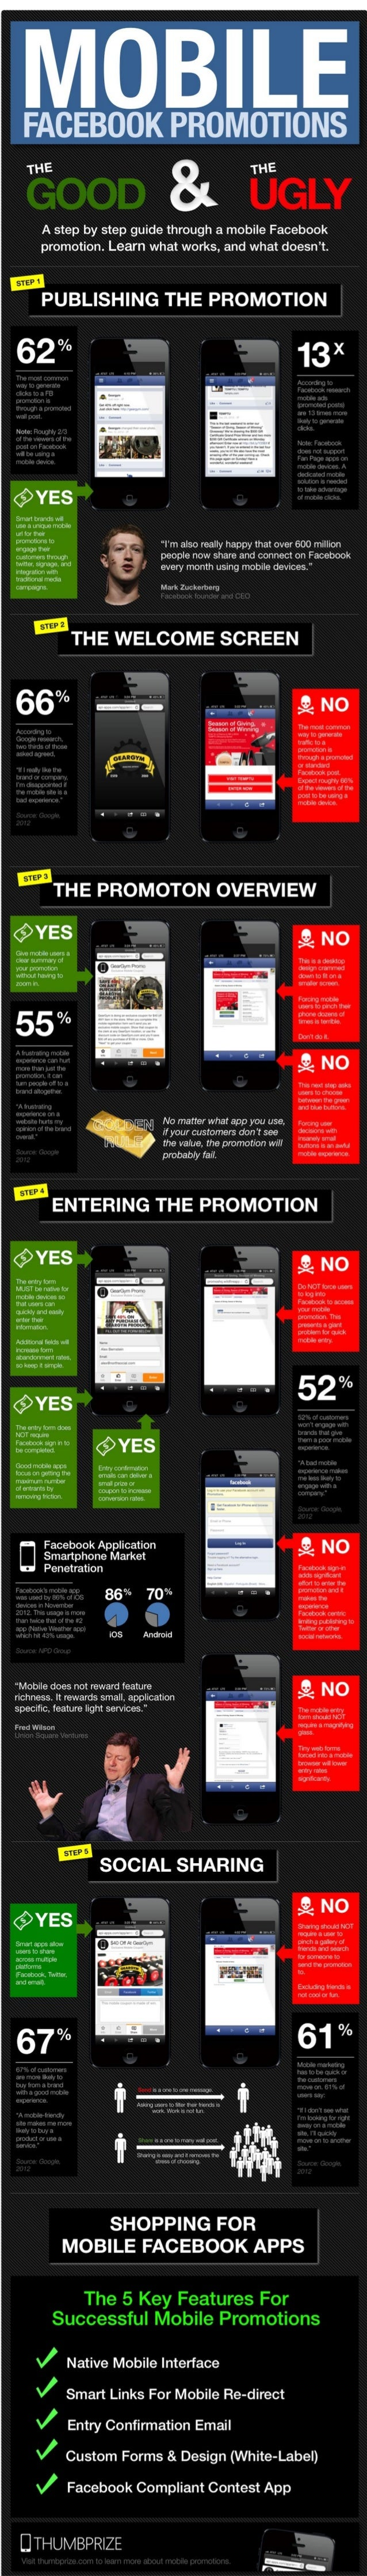 Guide to Mobile Facebook Promotions (Thumbprize)